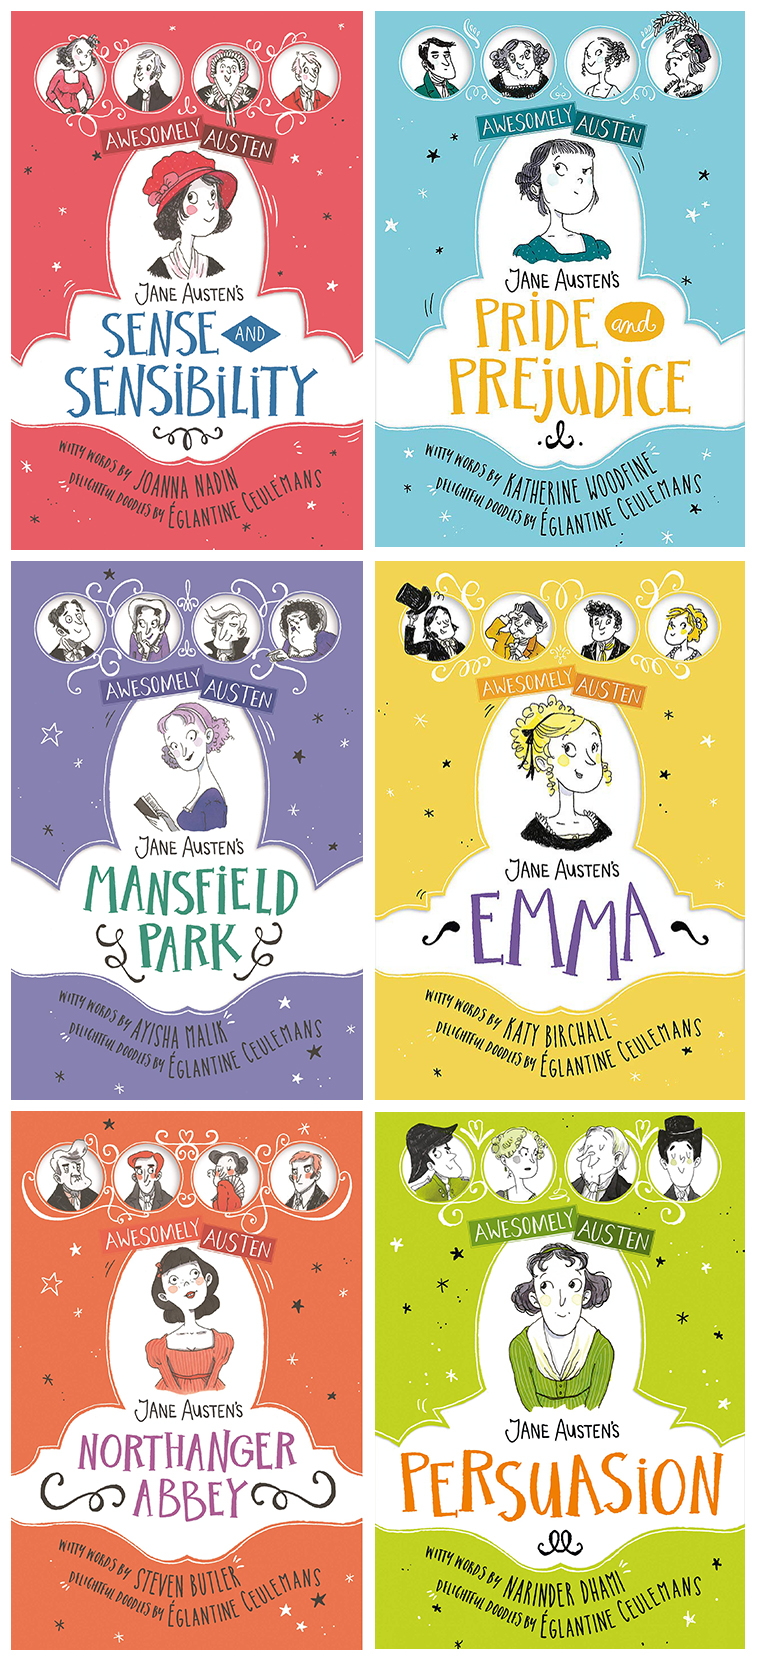 Awesomely Austen Capas